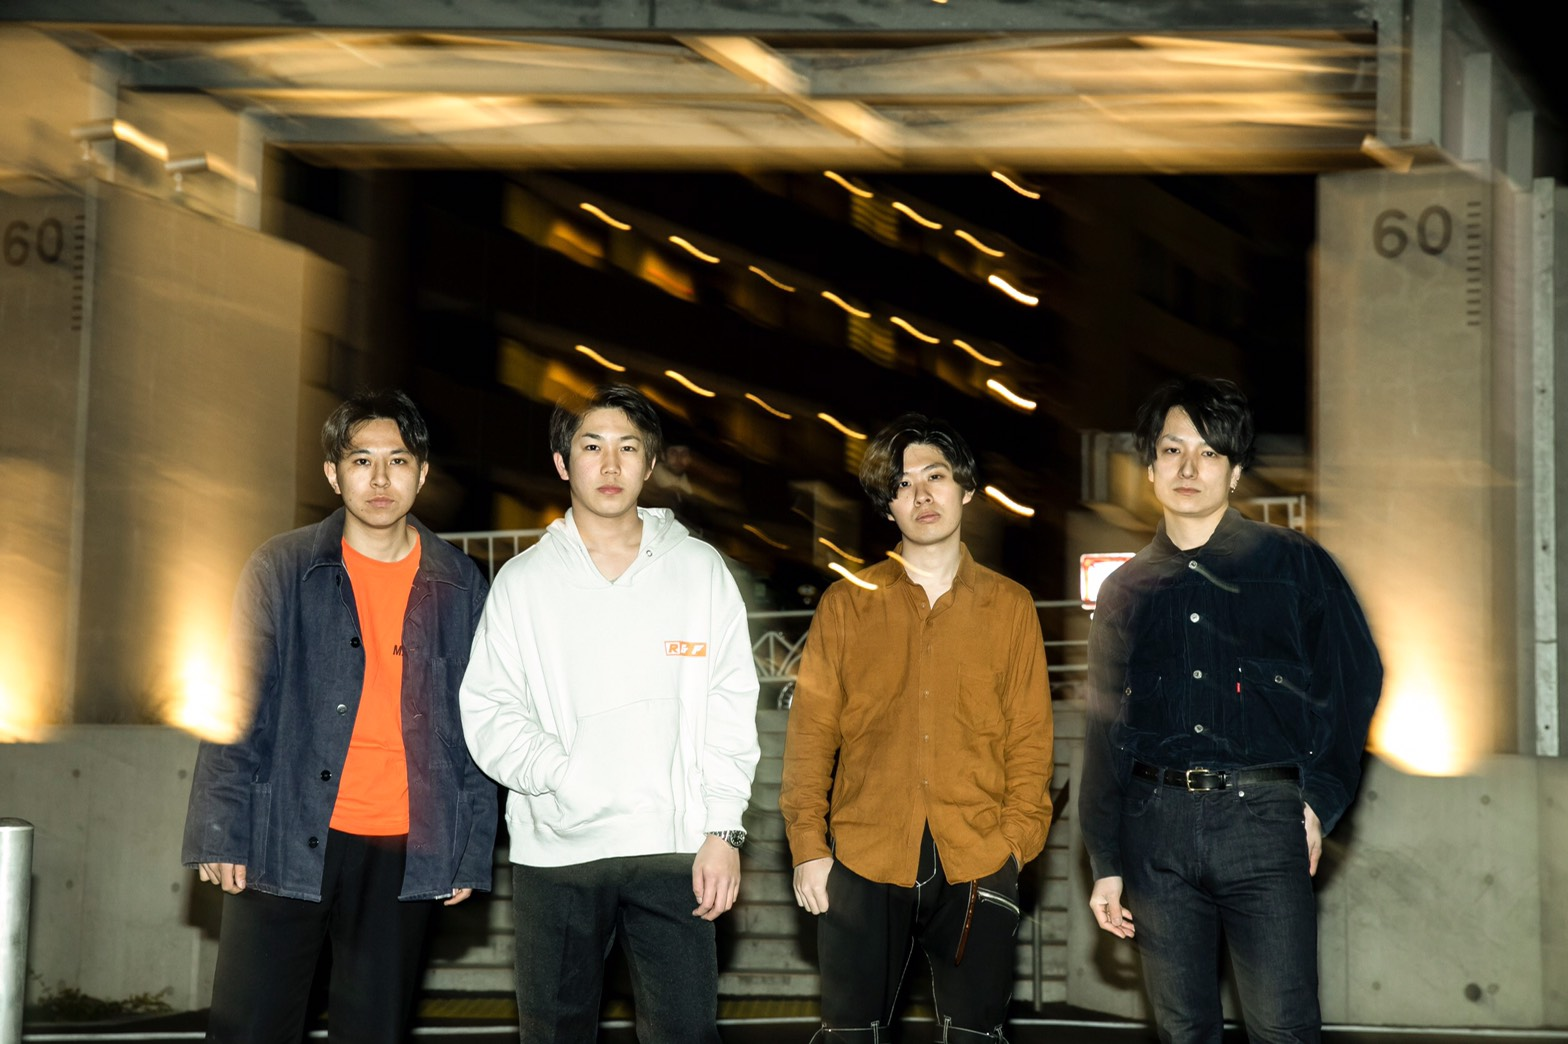 Rollo and Leaps、mini Album「ROADSIDE PLANET」リリースイベントの日程発表サムネイル画像